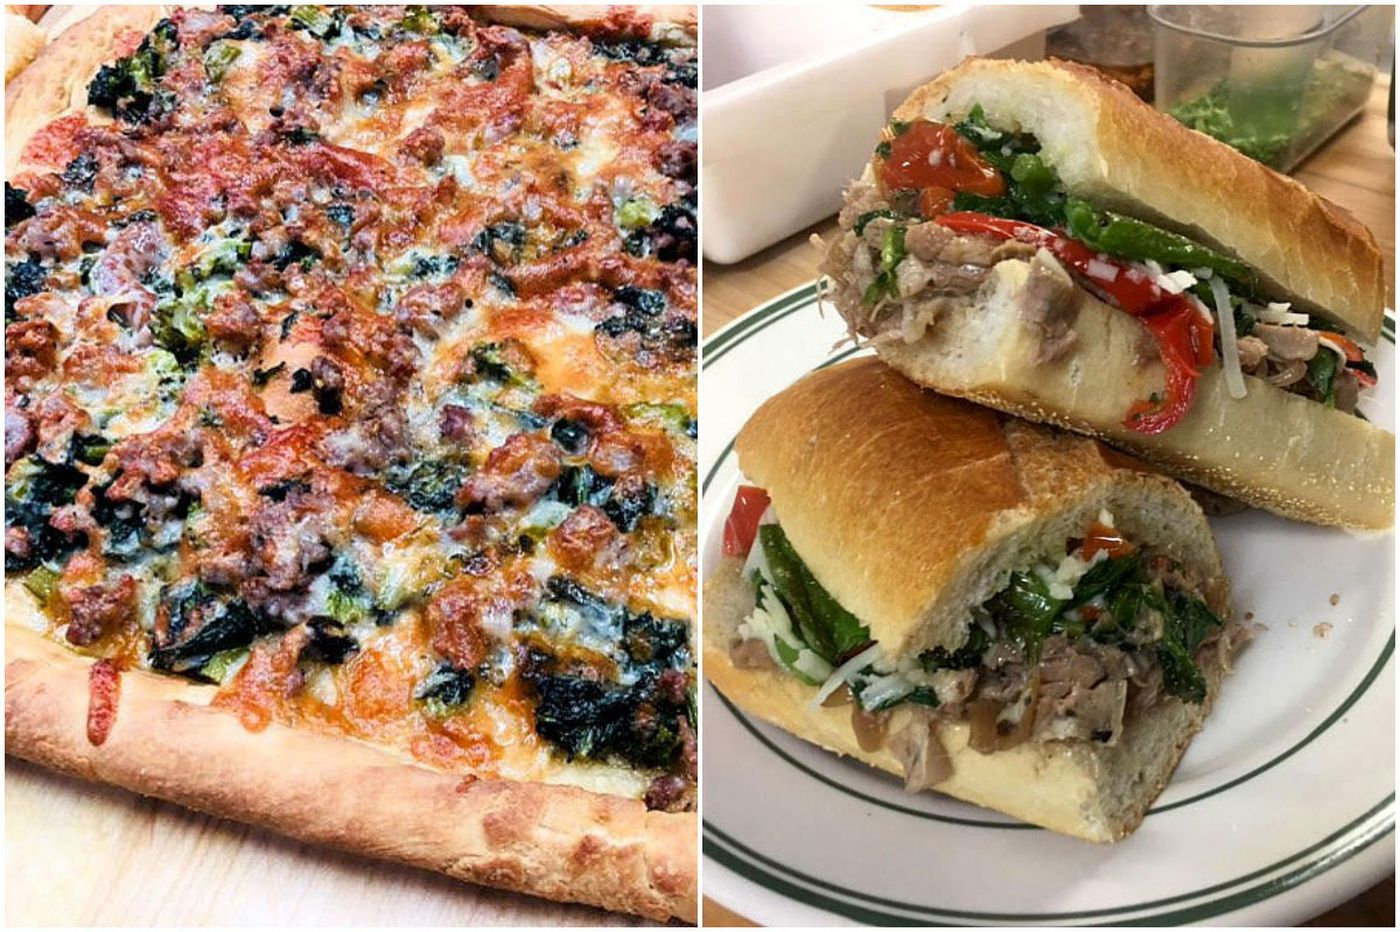 Ralph's in South Philly opens a food shop 2 doors away